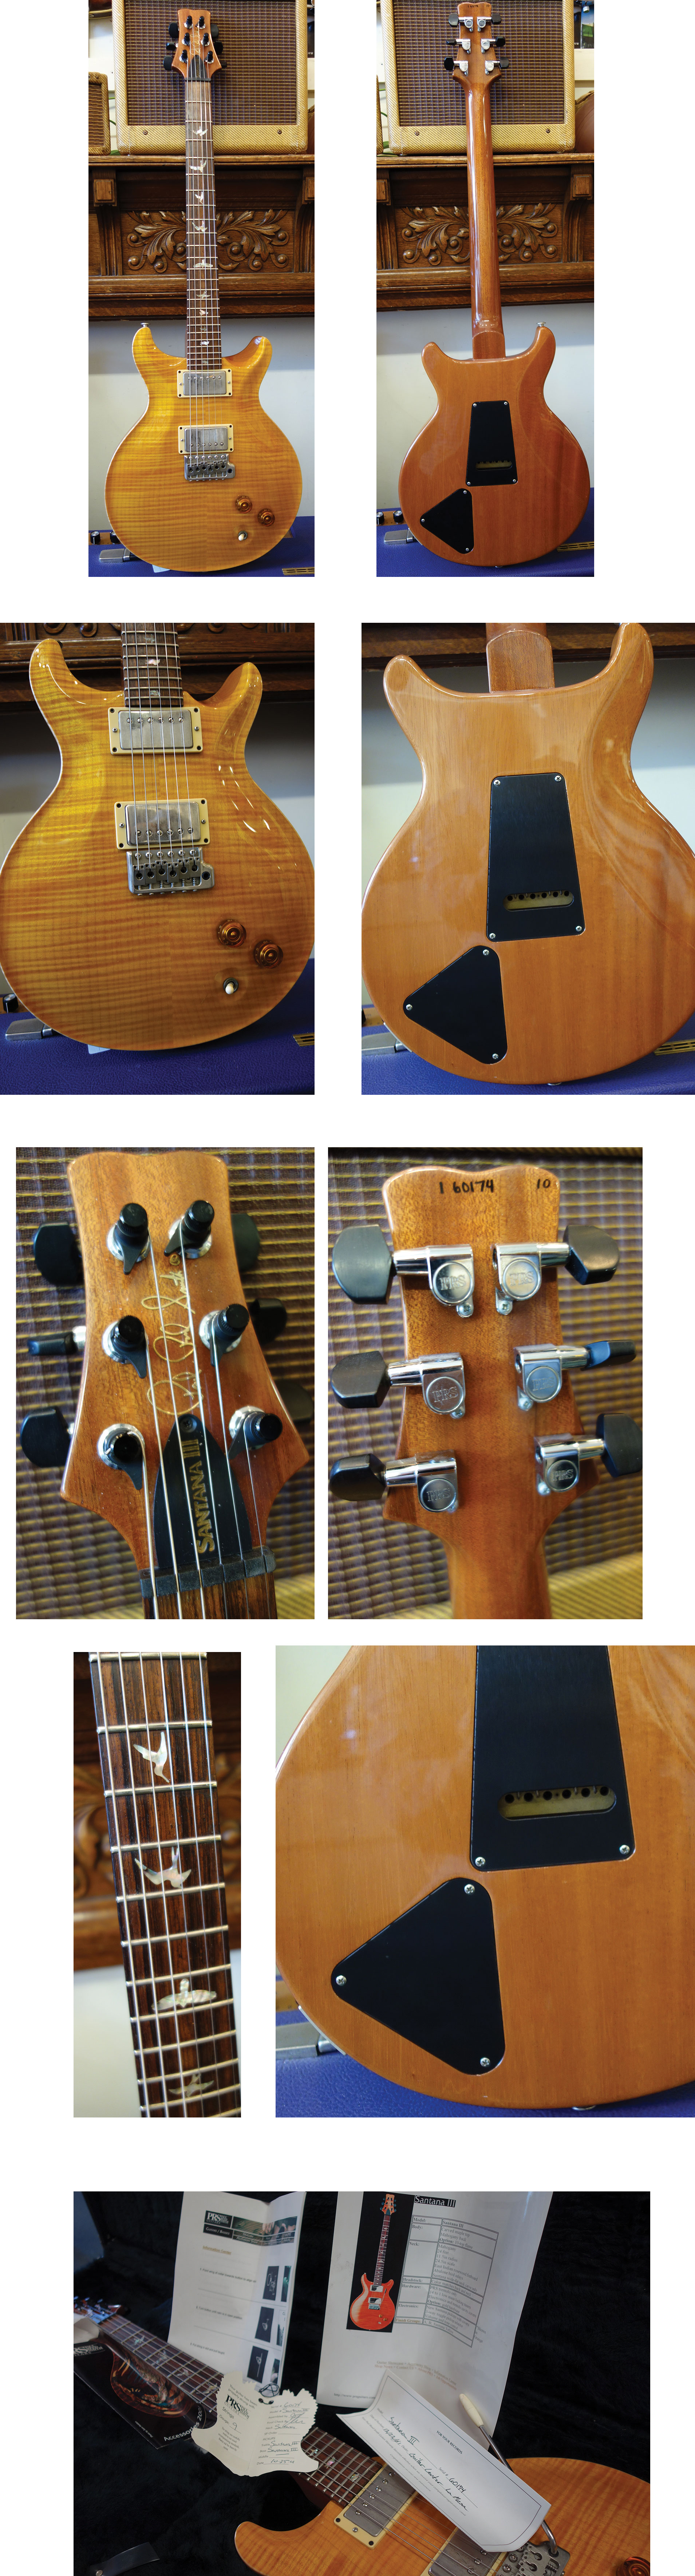 lark street music just in2001, santana yellow, carved maple 10 top, mahogany back and neck, indian rosewood board with abalone bird inlays, santana wide fat neck carve,